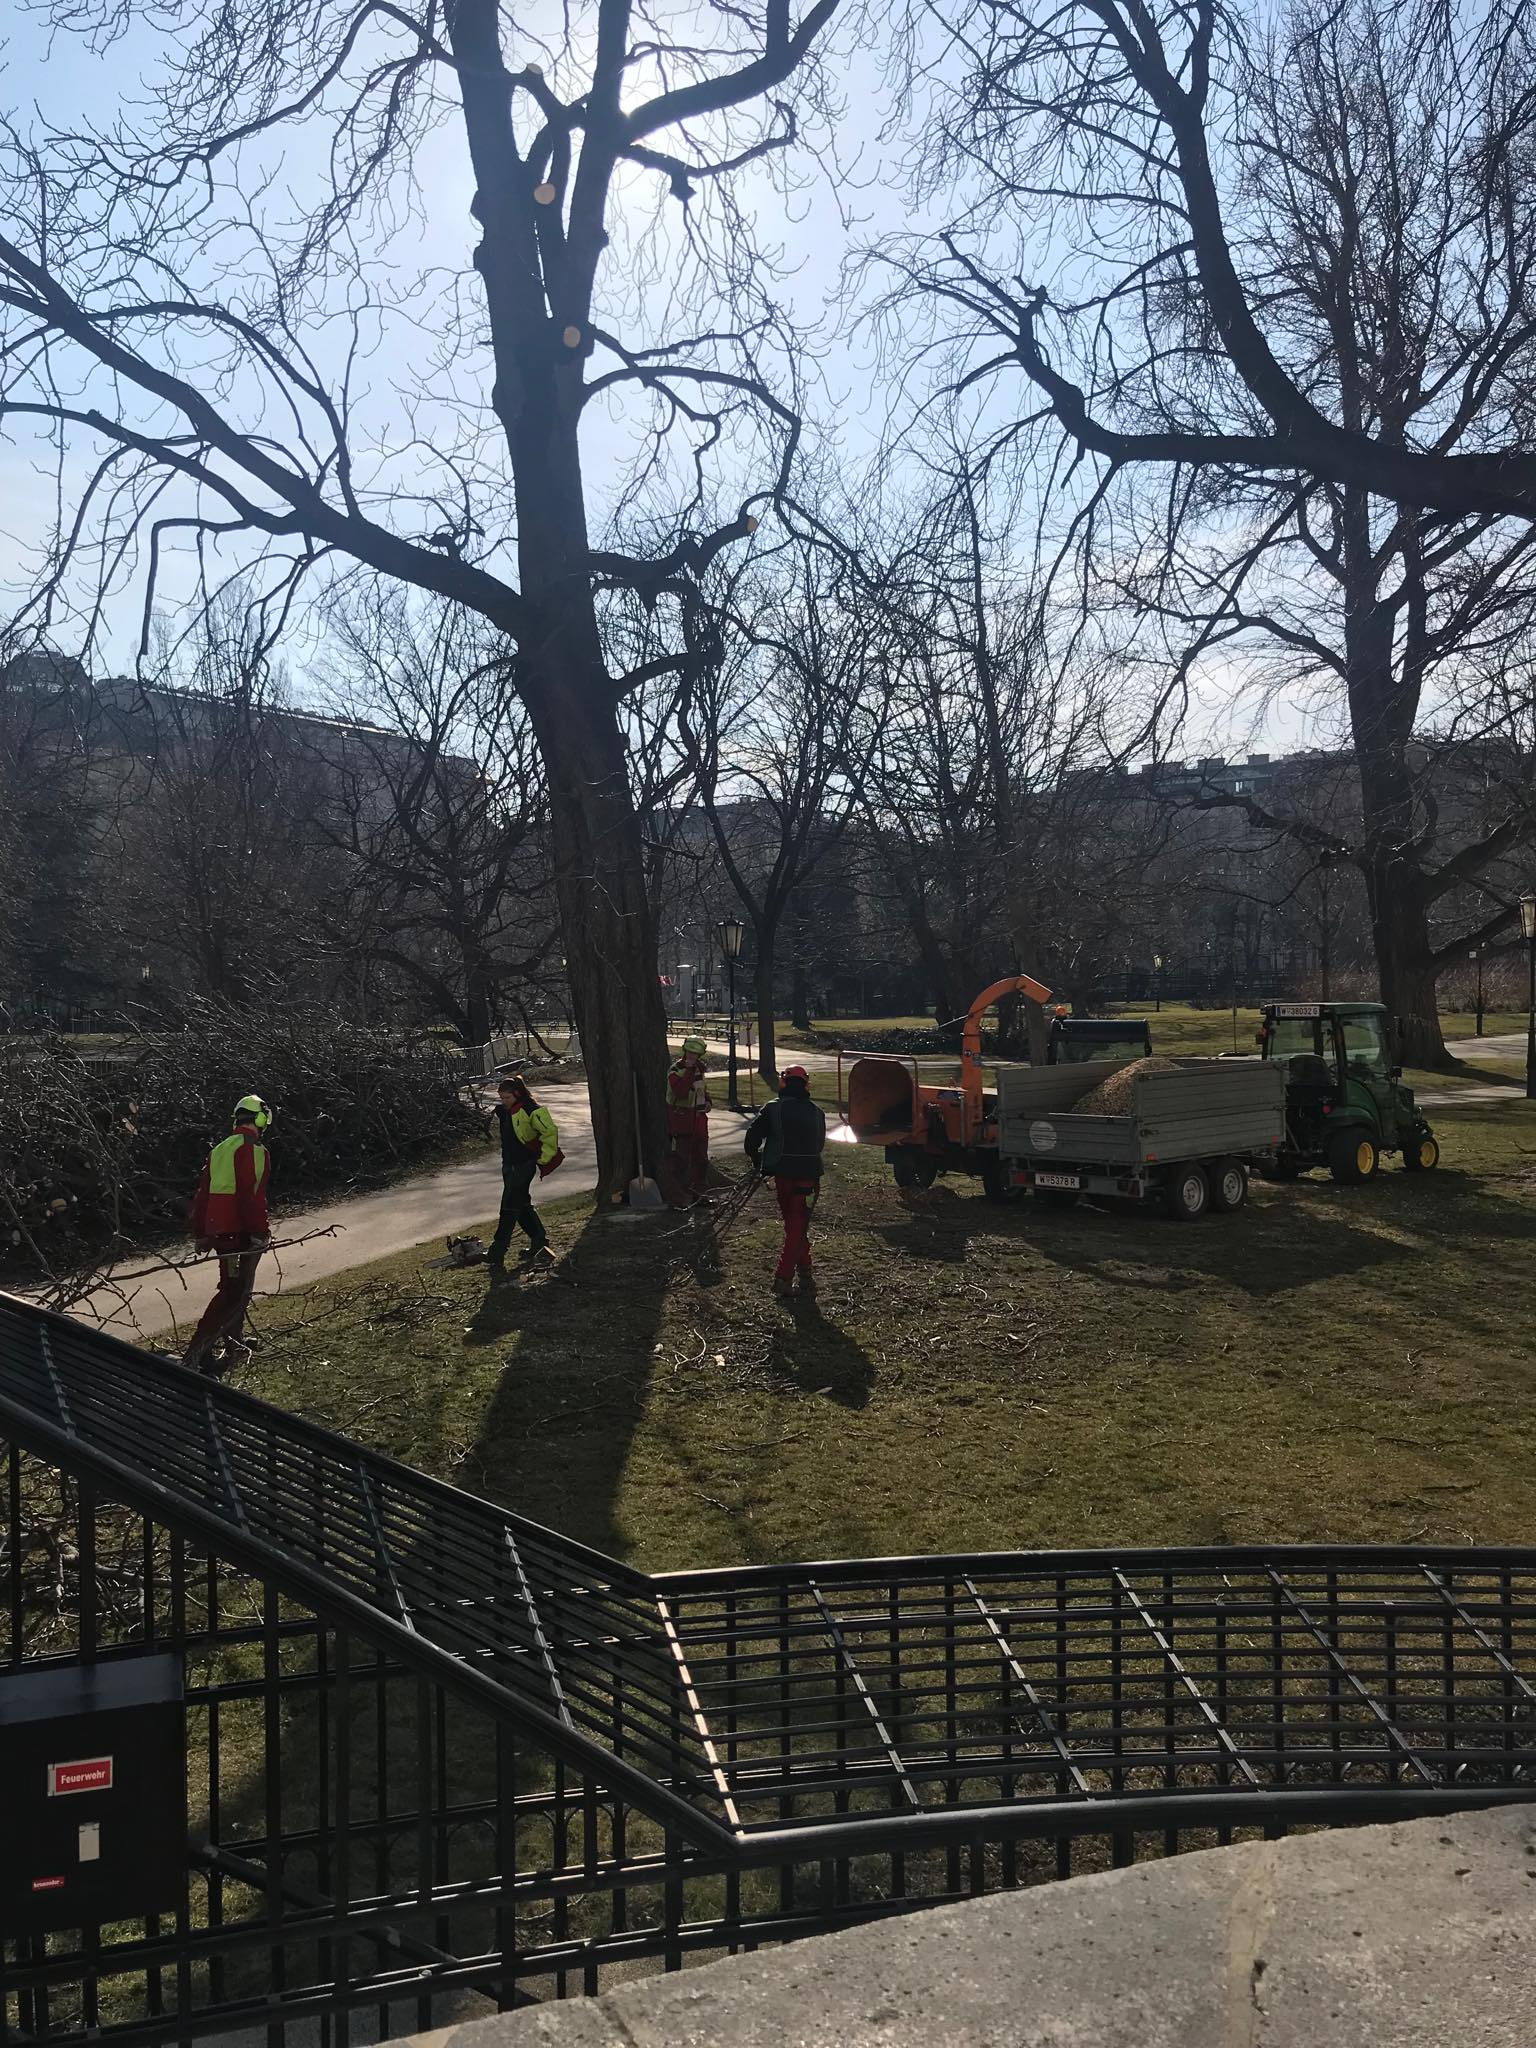 See how the City of Vienna takes care of its parks